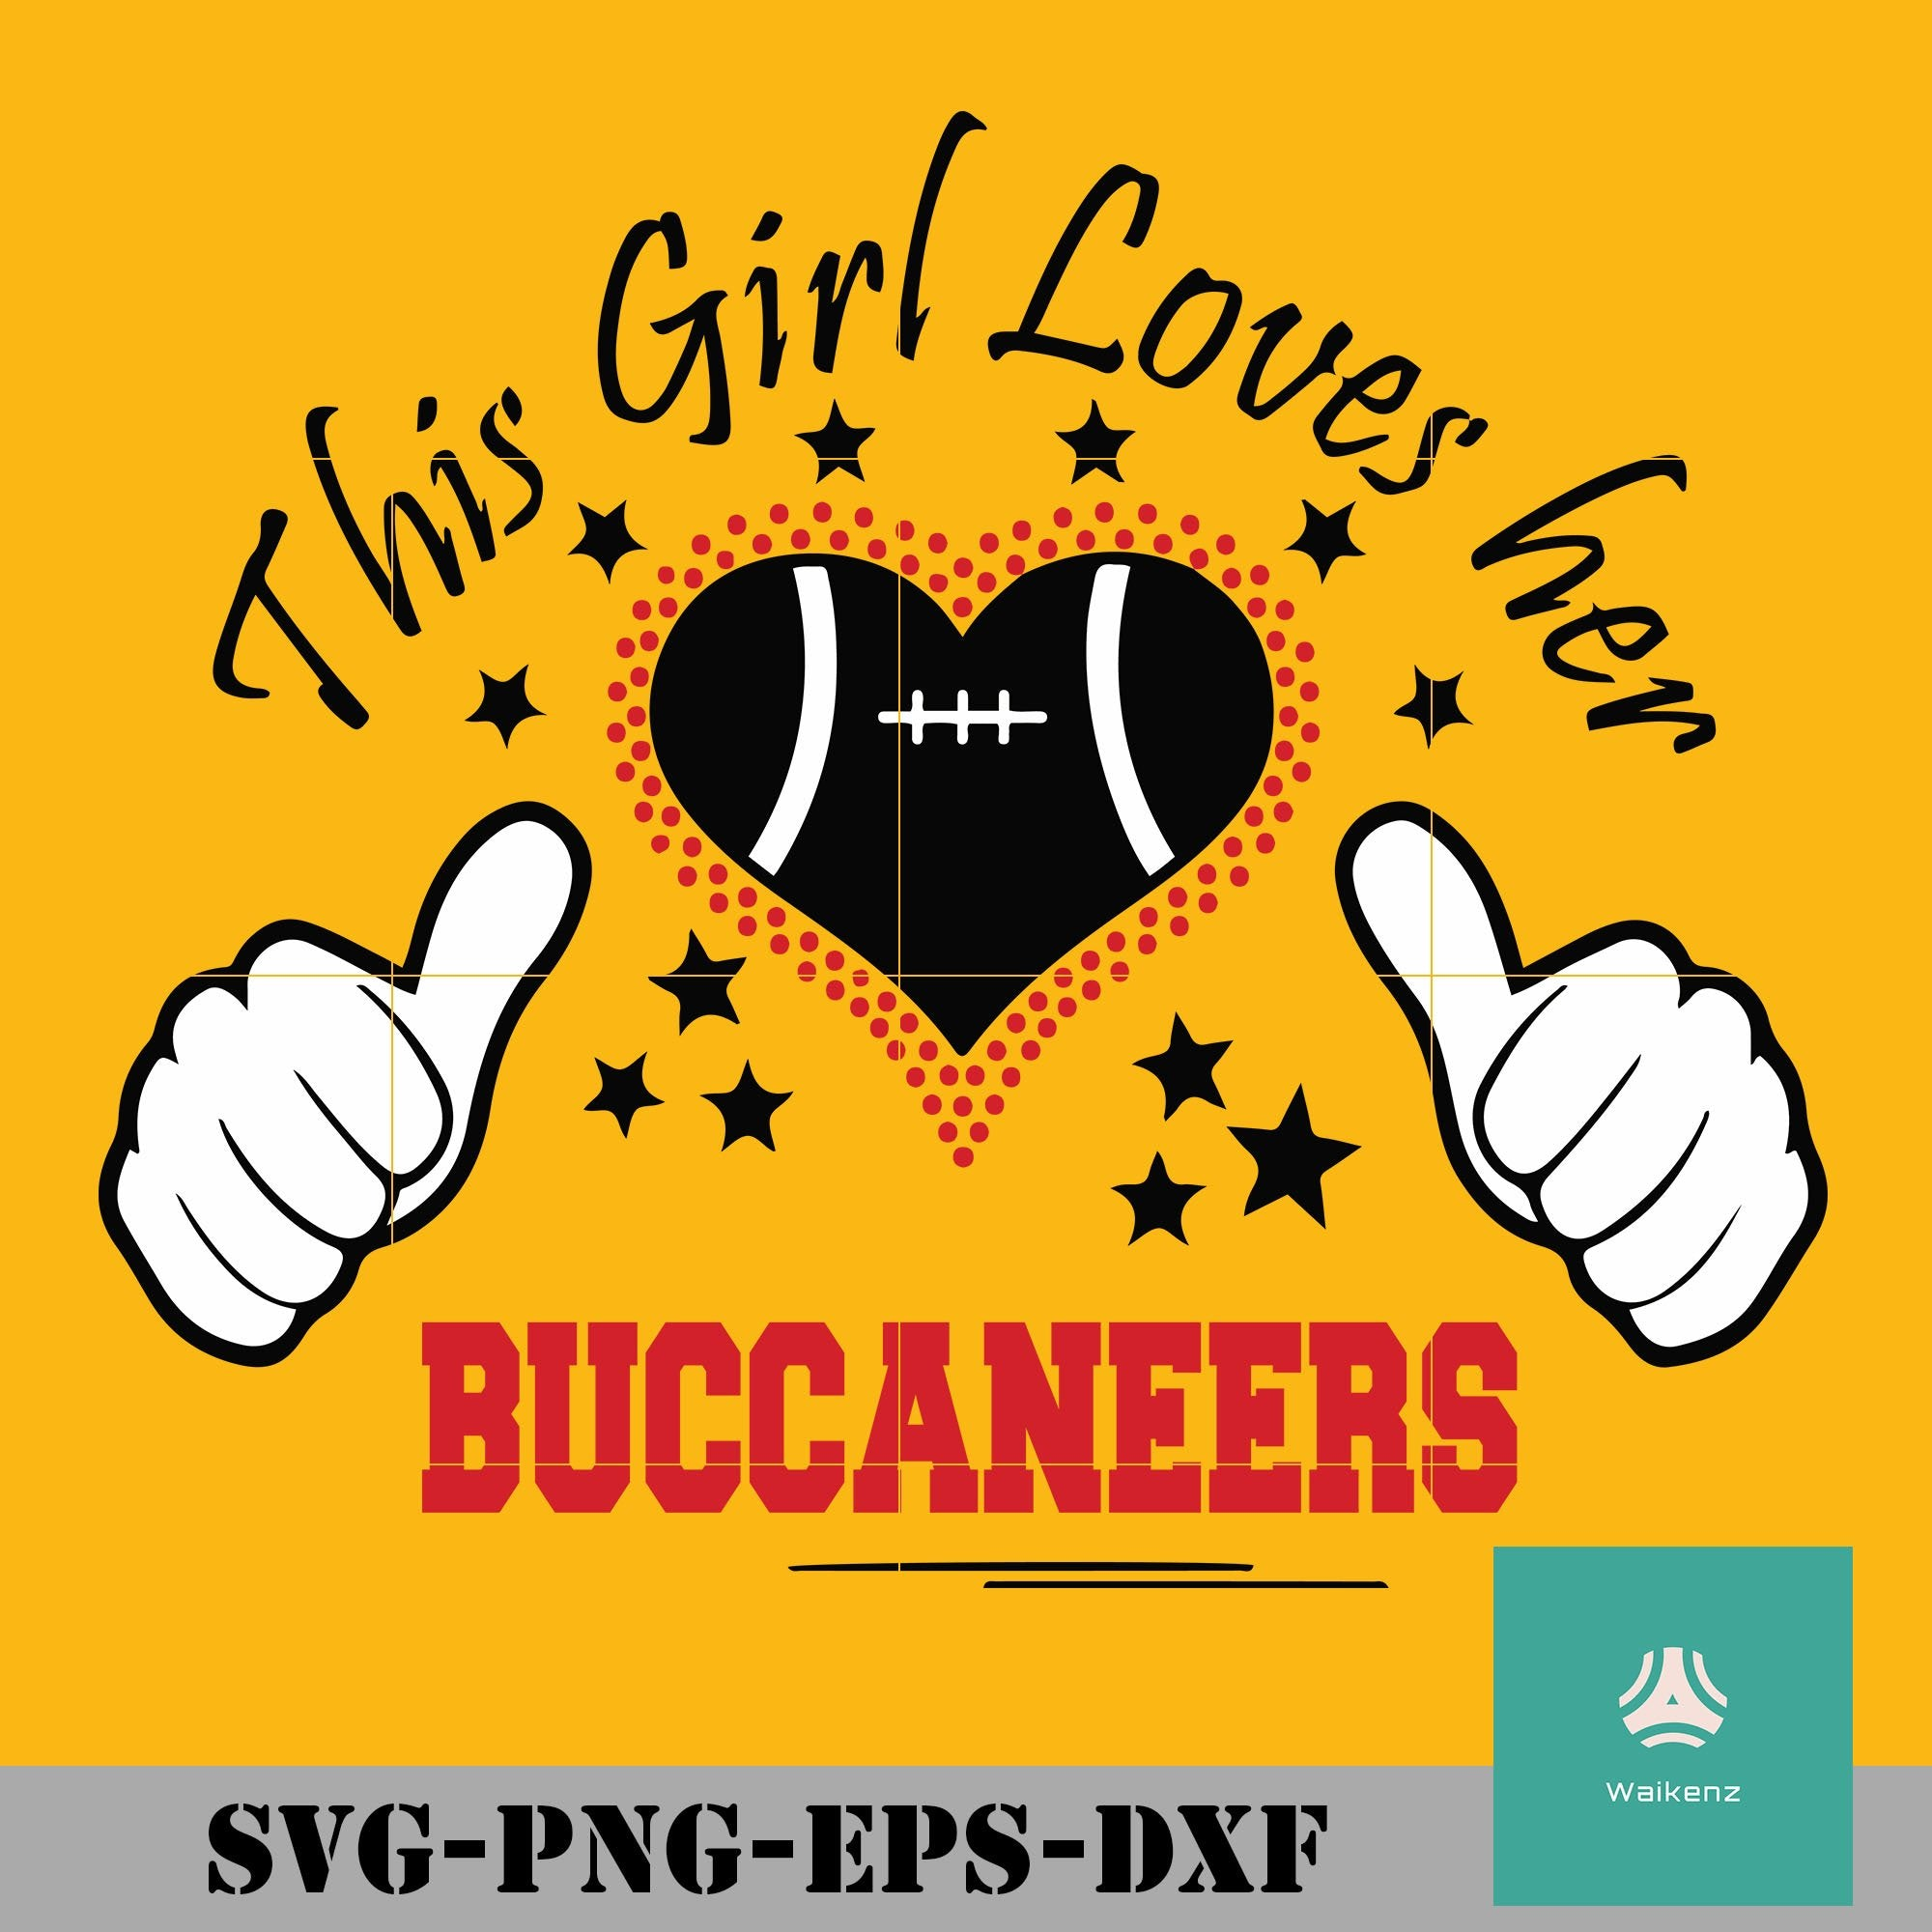 This Girl Loves Her Buccaneers Svg Tampa Bay Buccaneers Svg Buccanee Waikenz